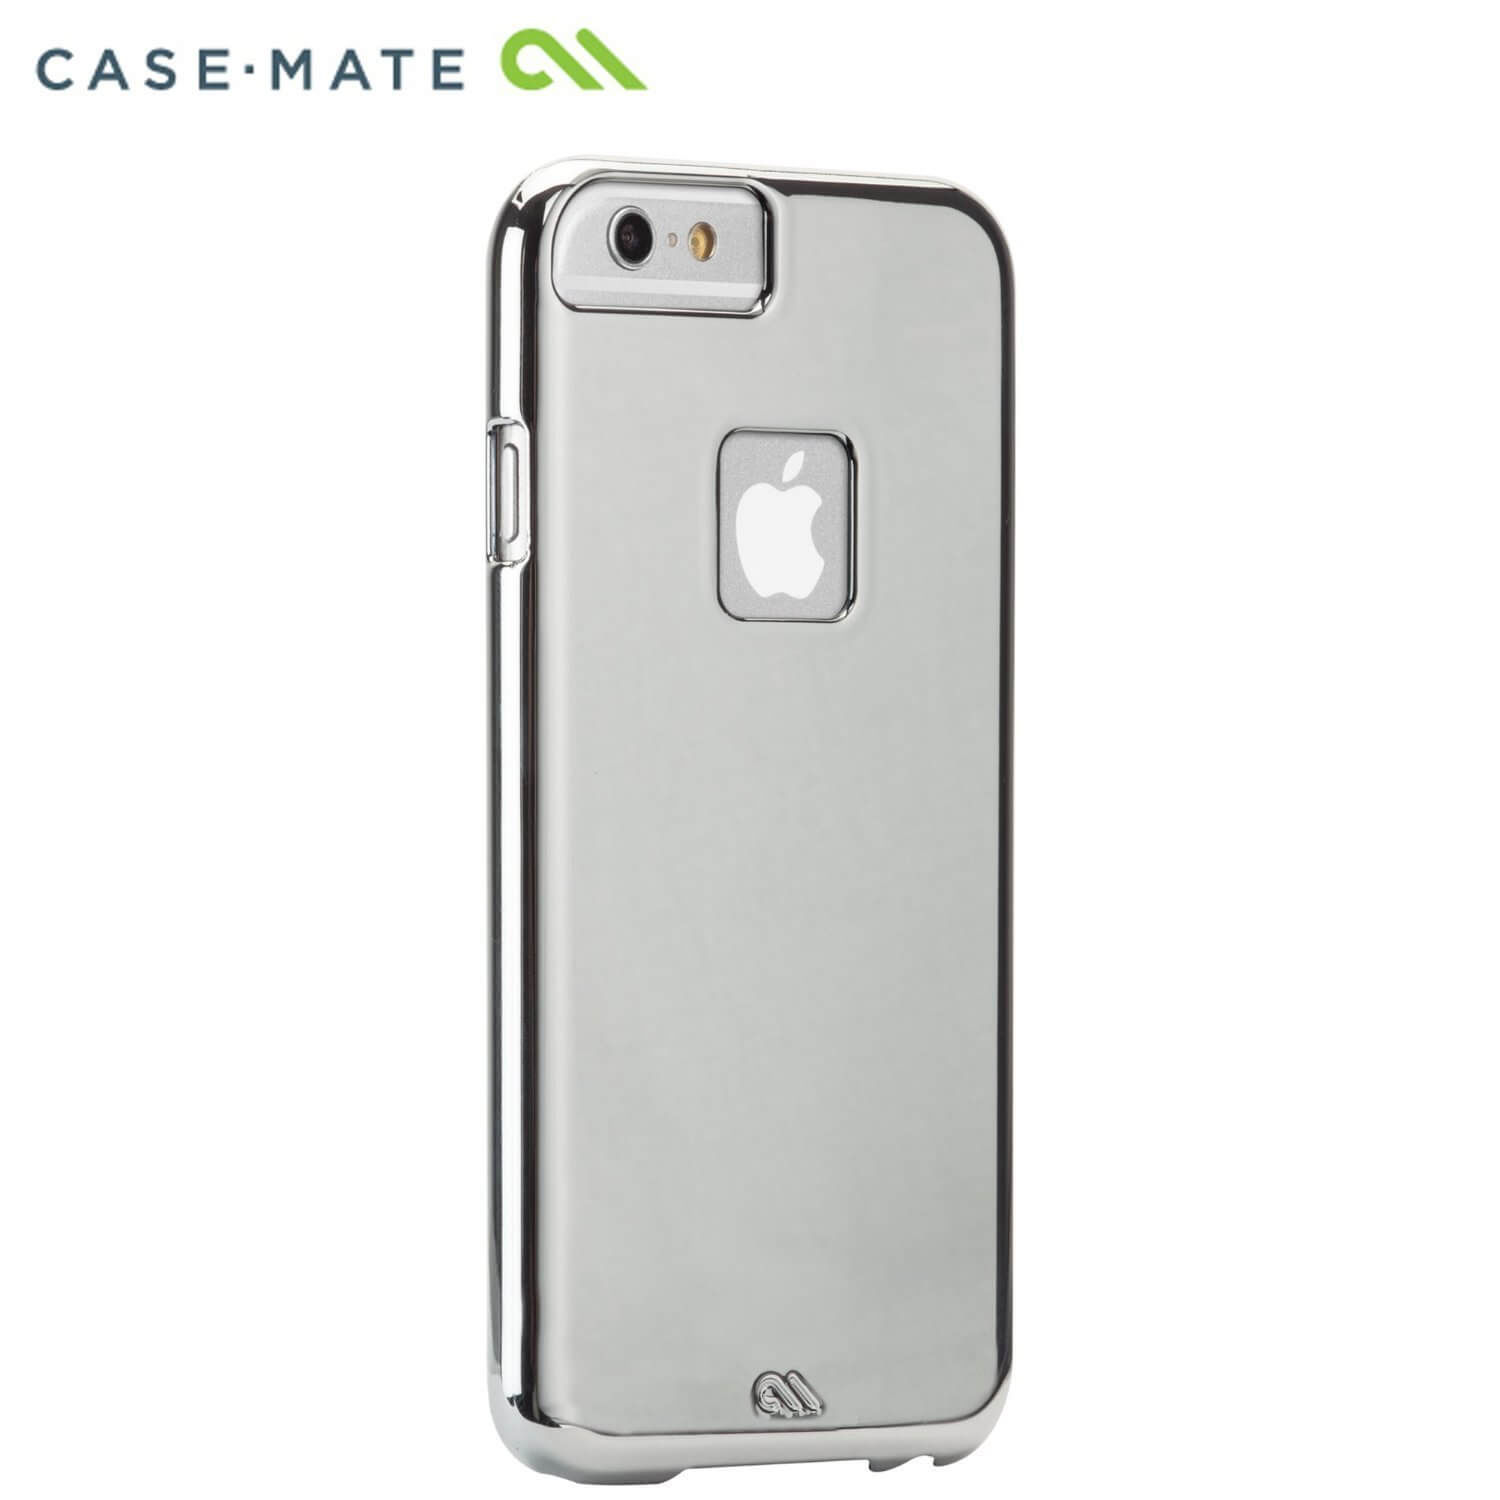 CaseMate Barely There - поликарбонатов кейс за iPhone 6, iPhone 6S, iPhone 8, iPhone 7 (сребрист)